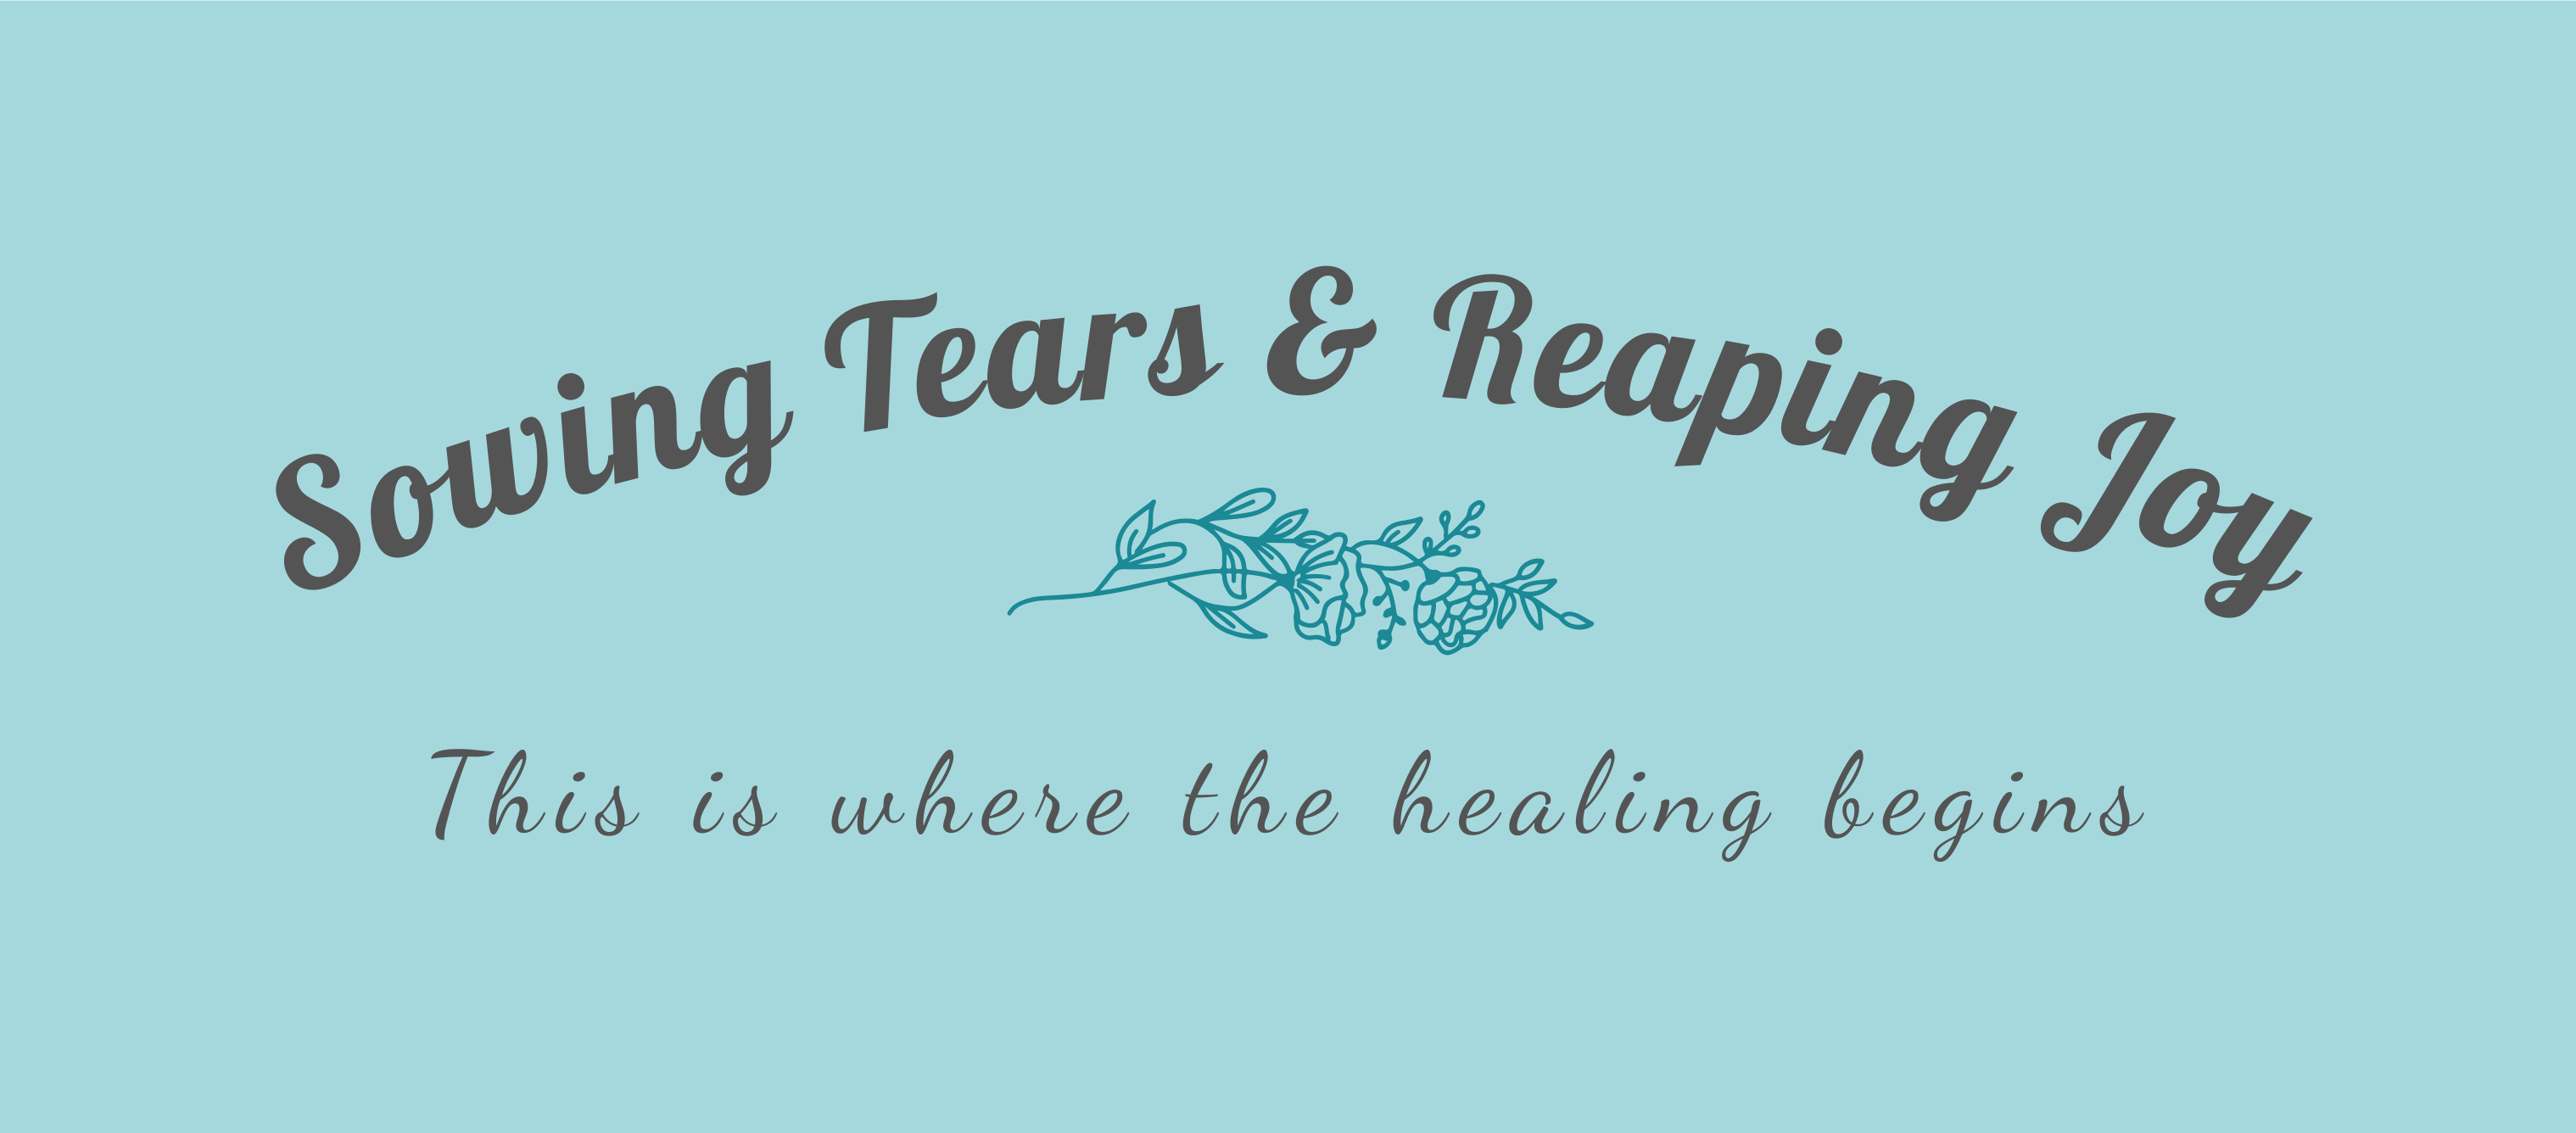 Sowing tears and reaping joy